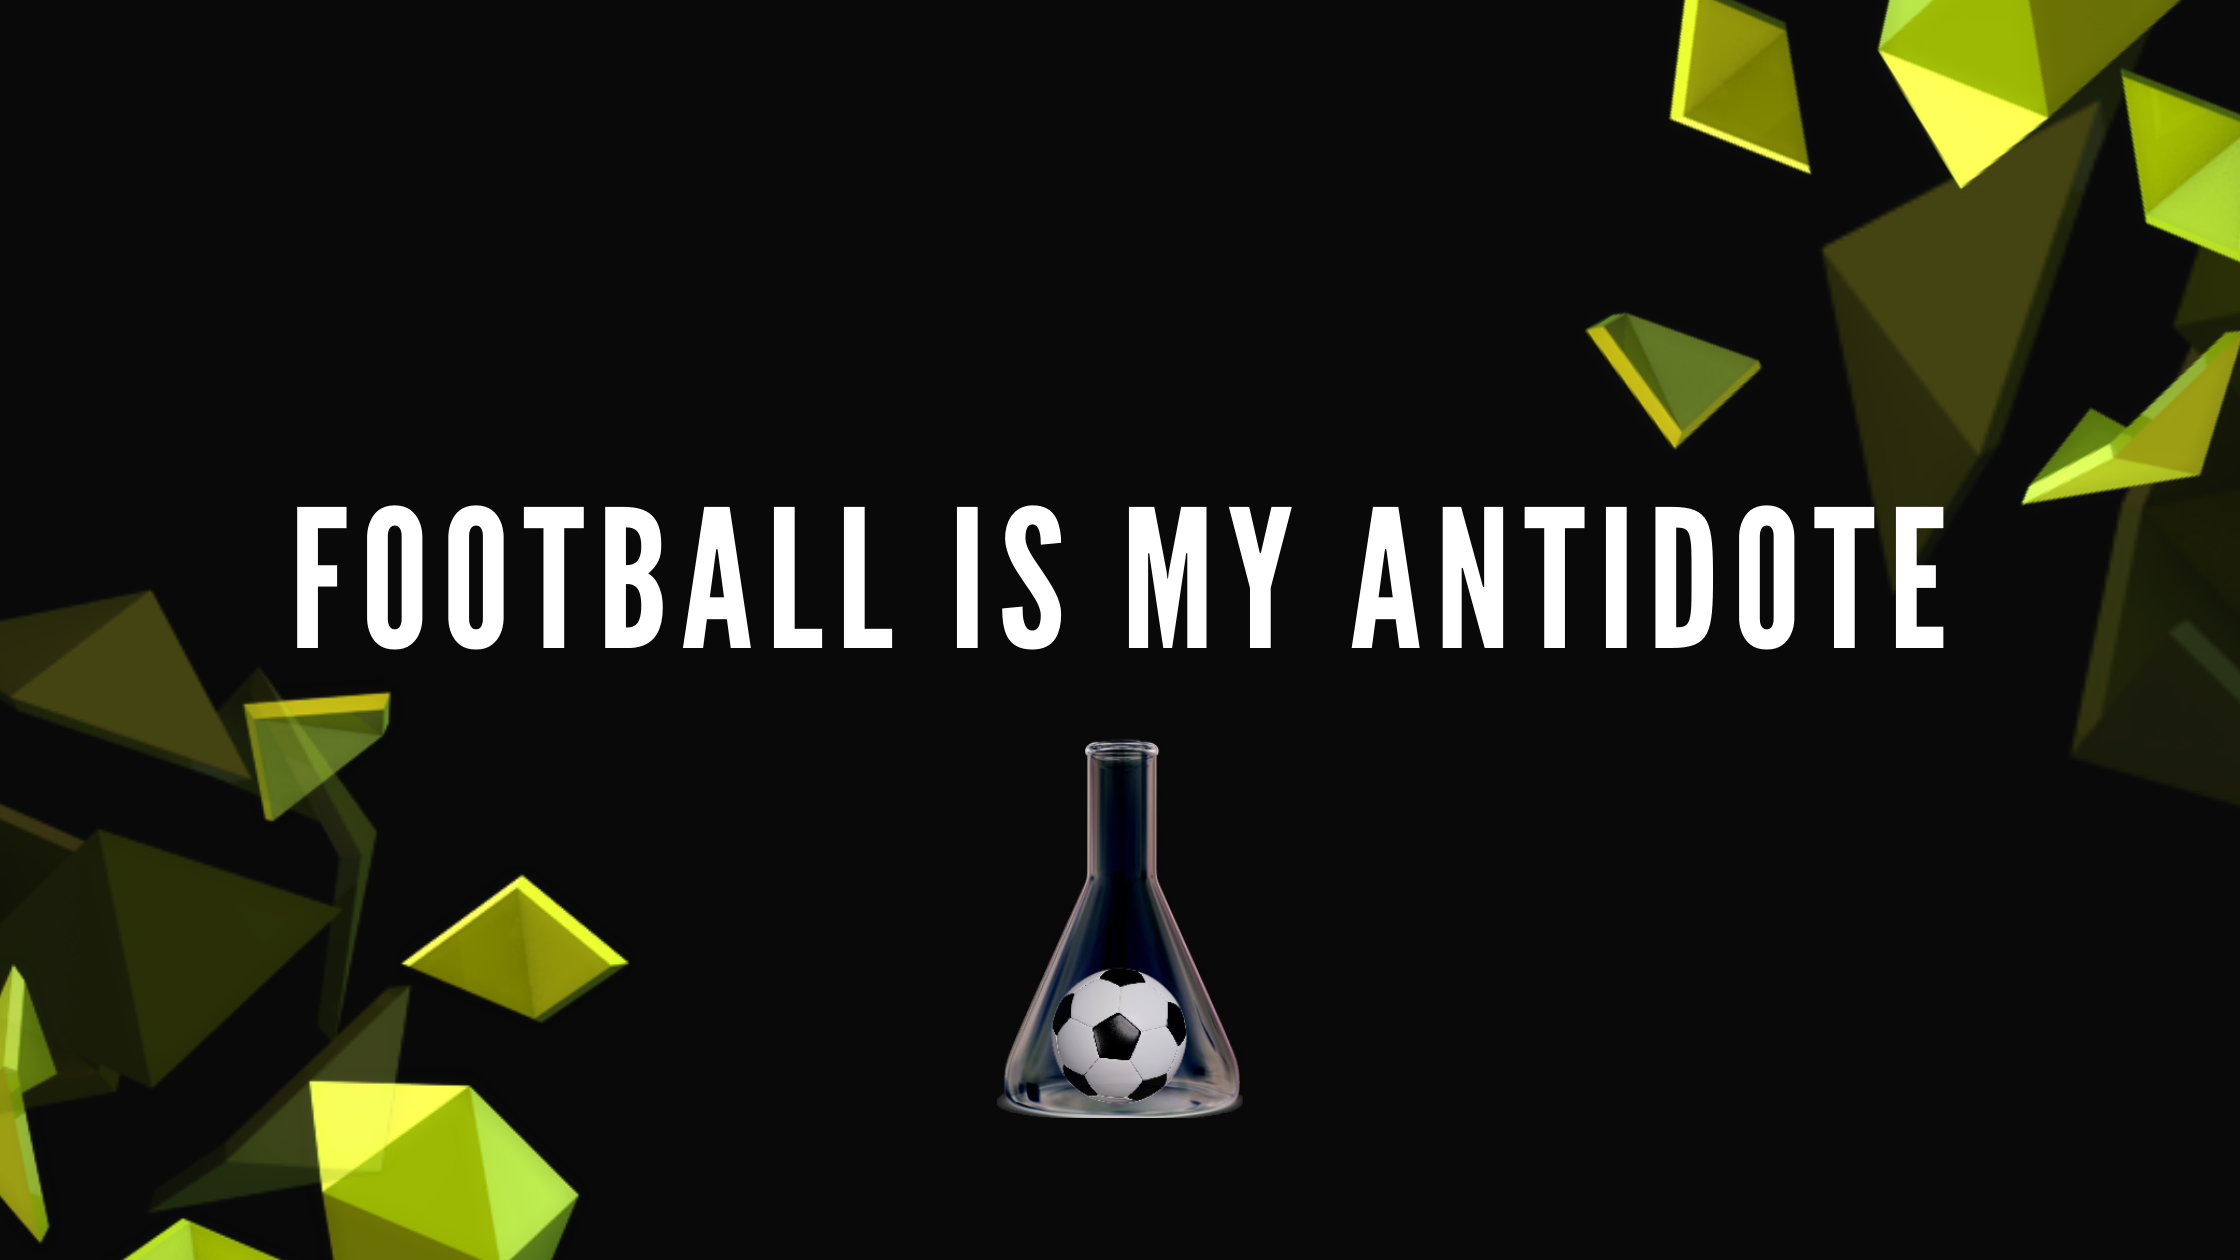 Football is my antidote